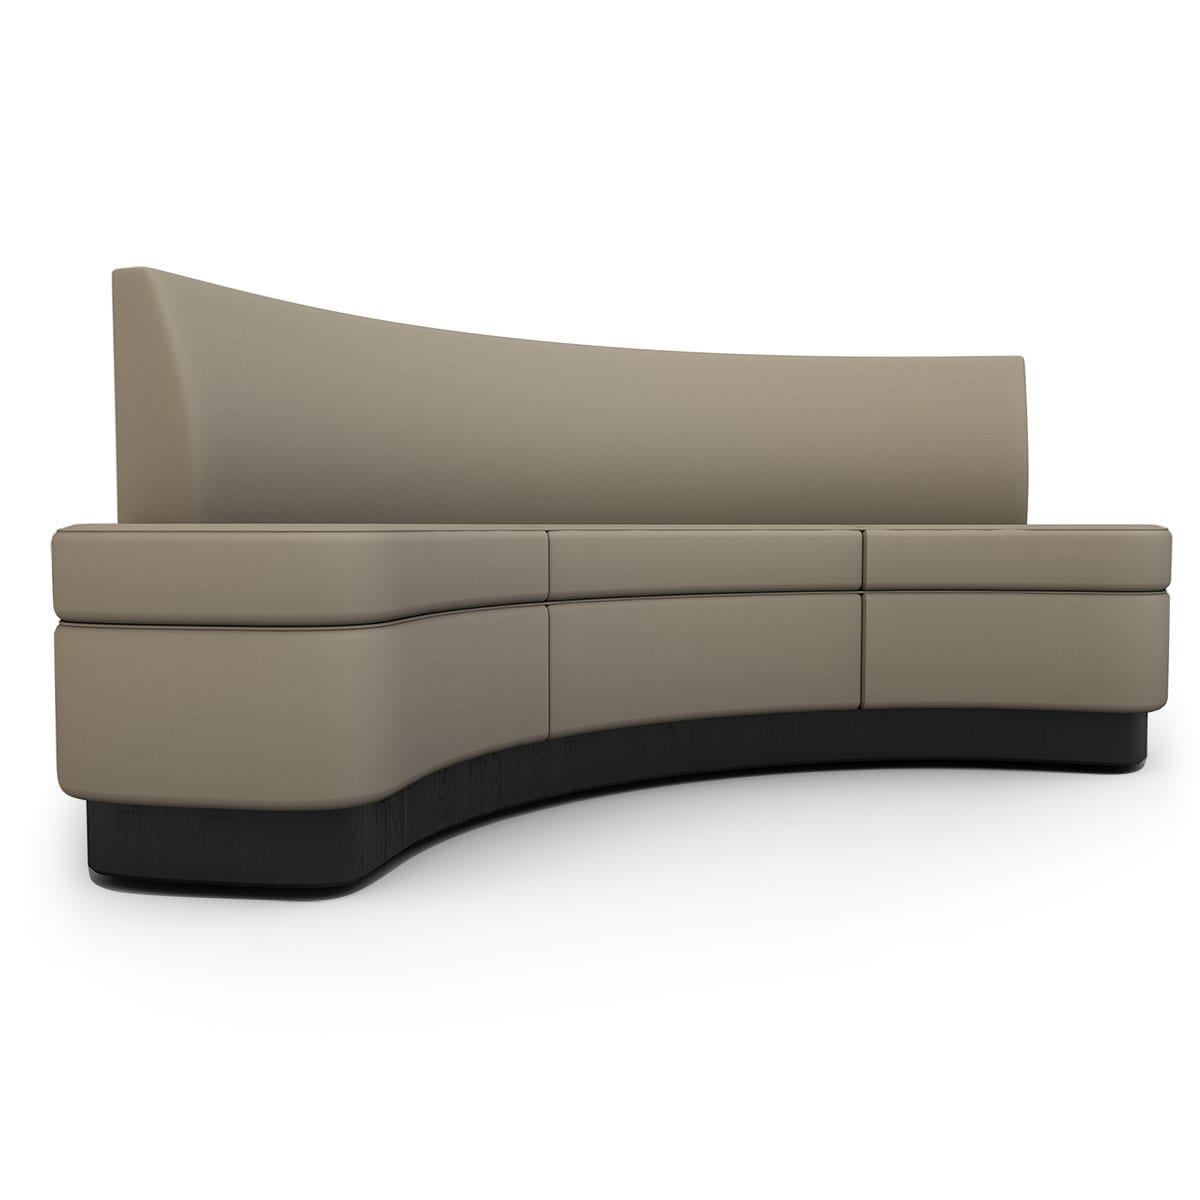 Sofa bed tampa florida 1025thepartycom for Sectional sleeper sofa florida